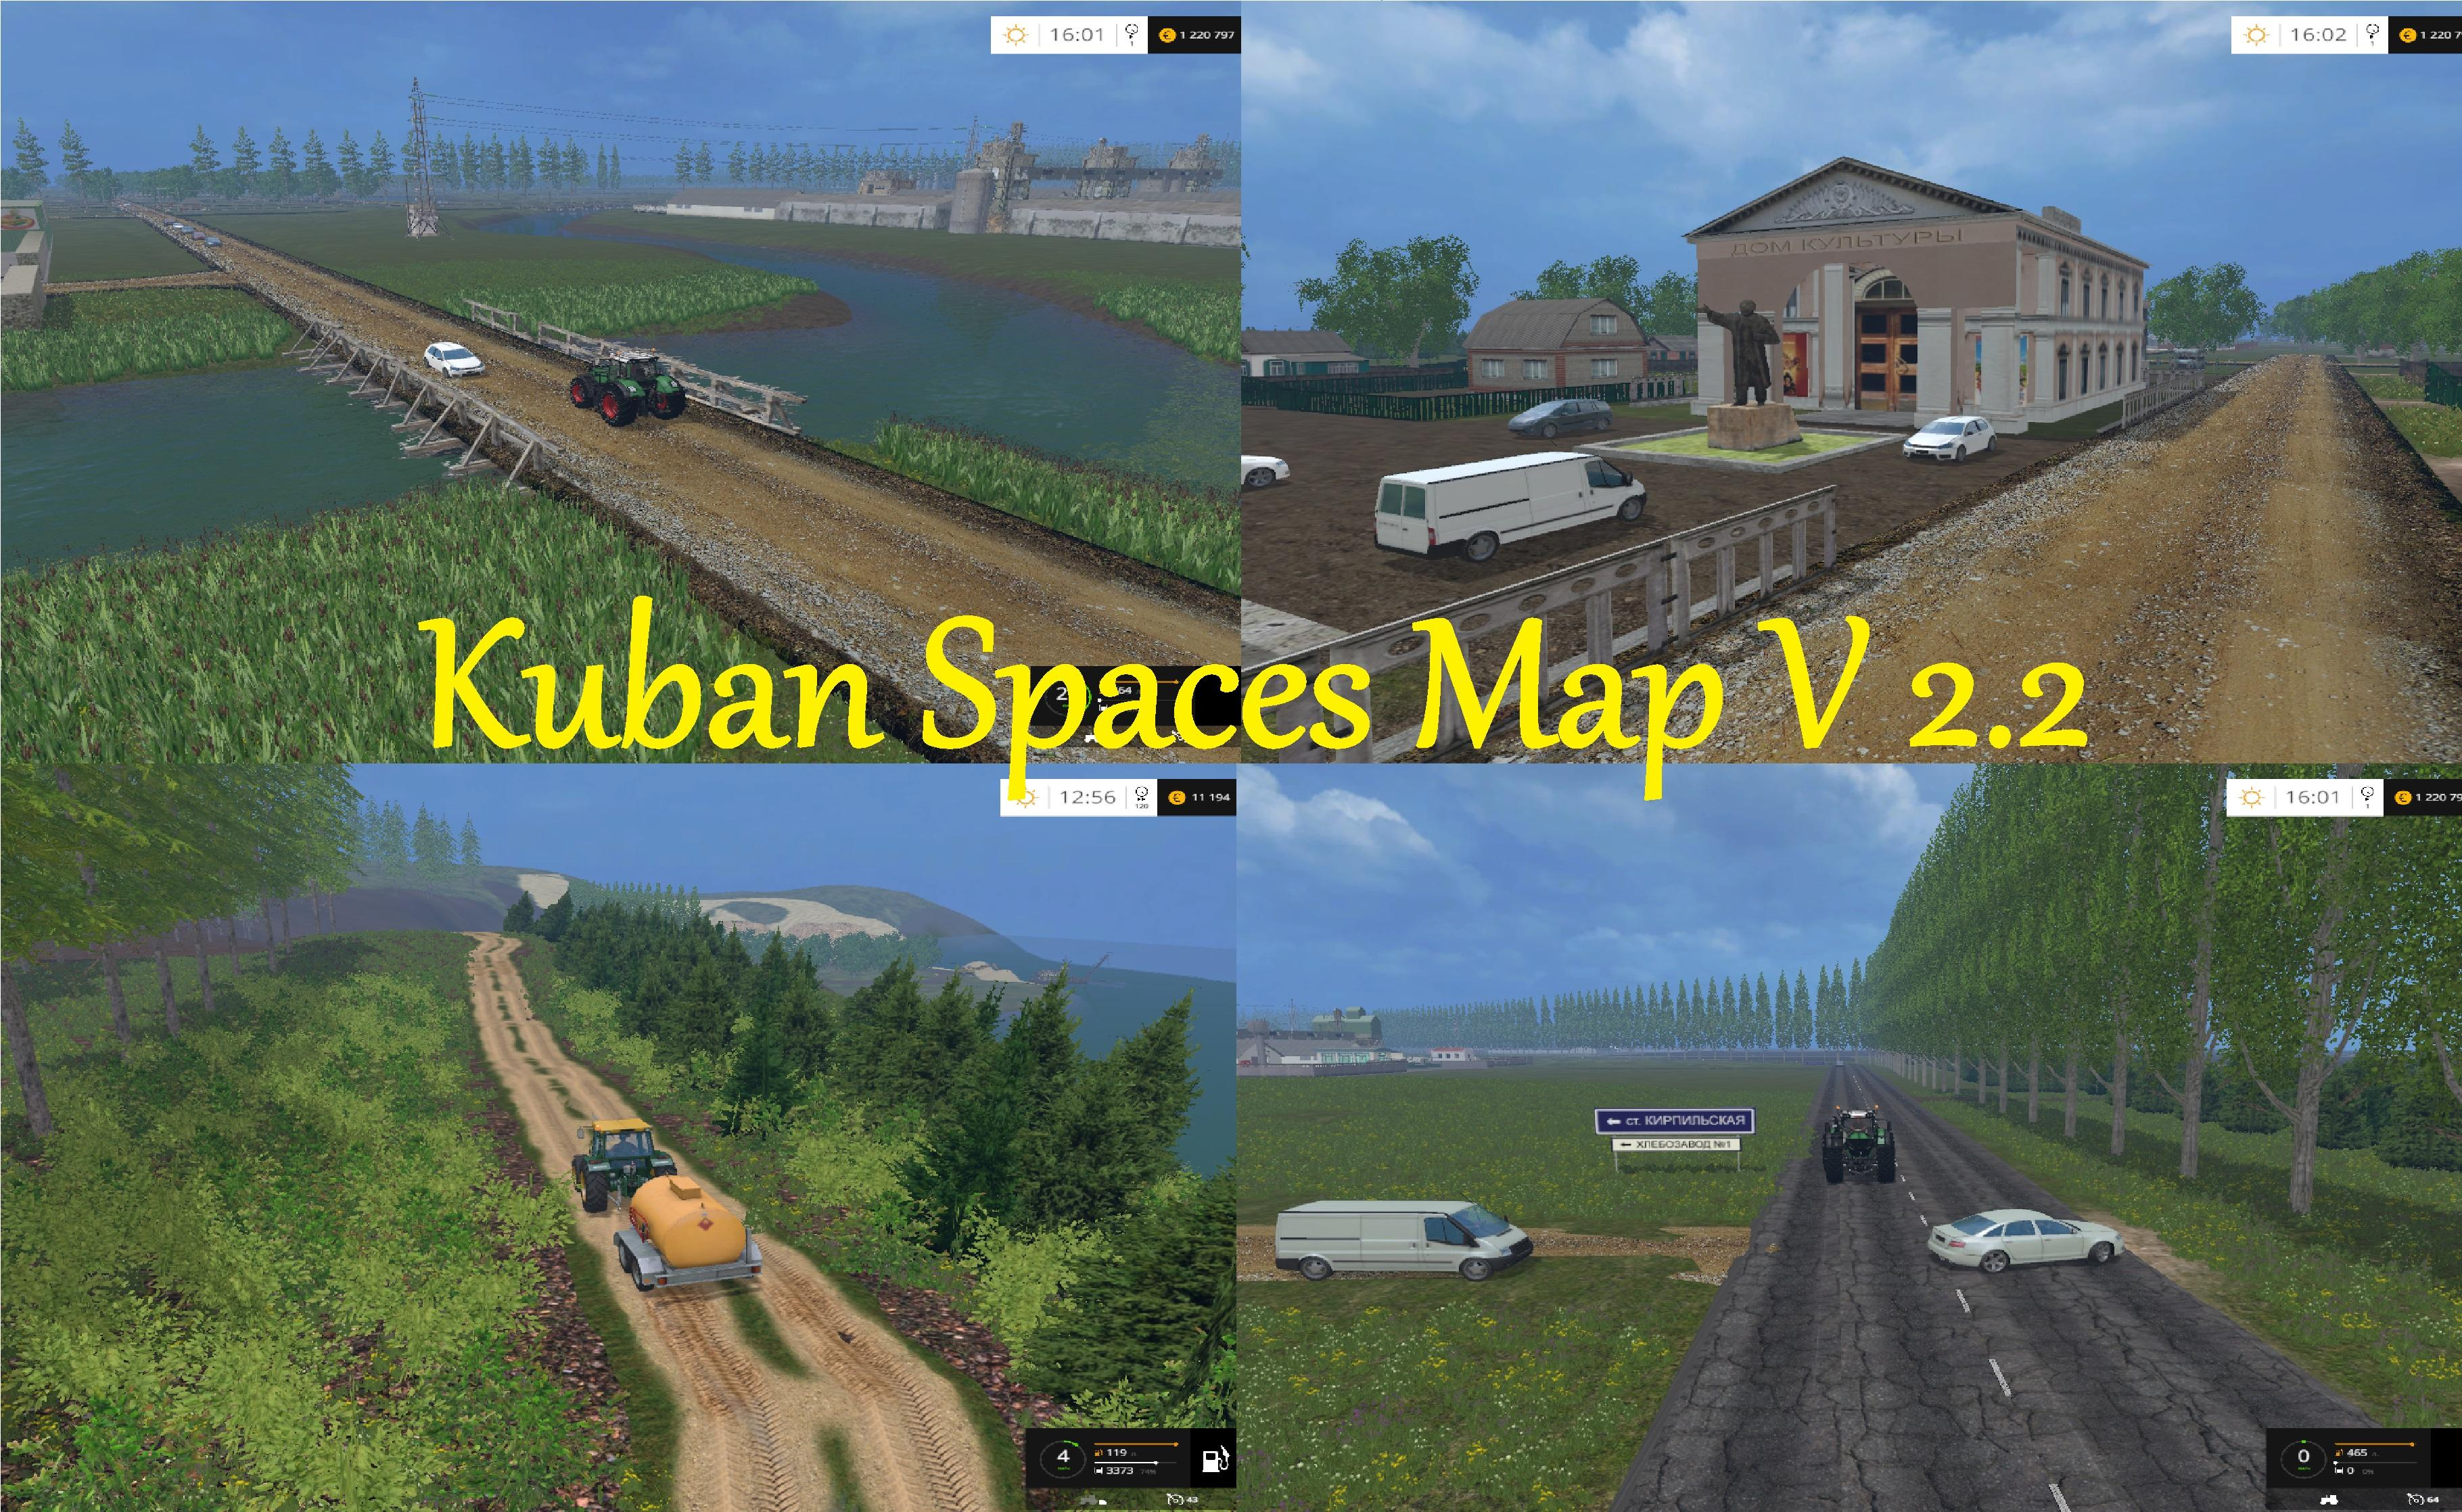 Kuban spaces map v 2 2 farming simulator modification for The russian mod